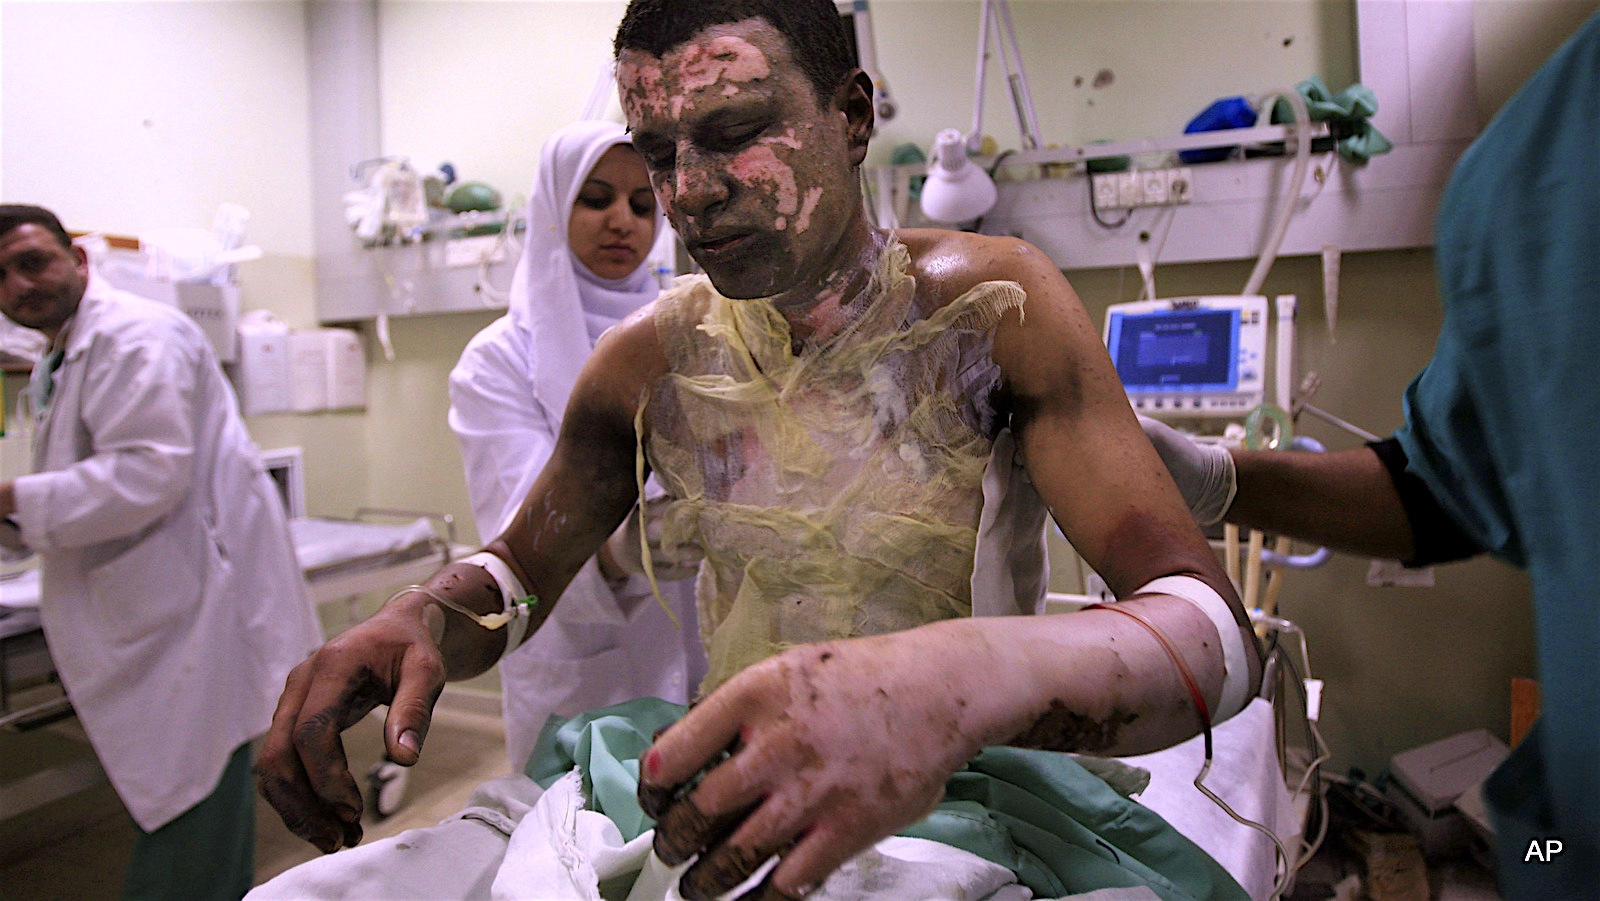 ** FILE ** EDS NOTE GRAPHIC CONTENT ** In this Sunday, Jan. 11, 2009, file photo shows Palestinian Akram Abu Roka is treated for burns at Nasser Hospital in Khan Younis in the southern Gaza Strip. Human Rights Watch issued a report Wednesday, March 25 2009 that Israel fired white phosphorous shells indiscriminately over densely populated Gaza, and that this is evidence of war crimes. (AP Photo/Eyad Baba, File)